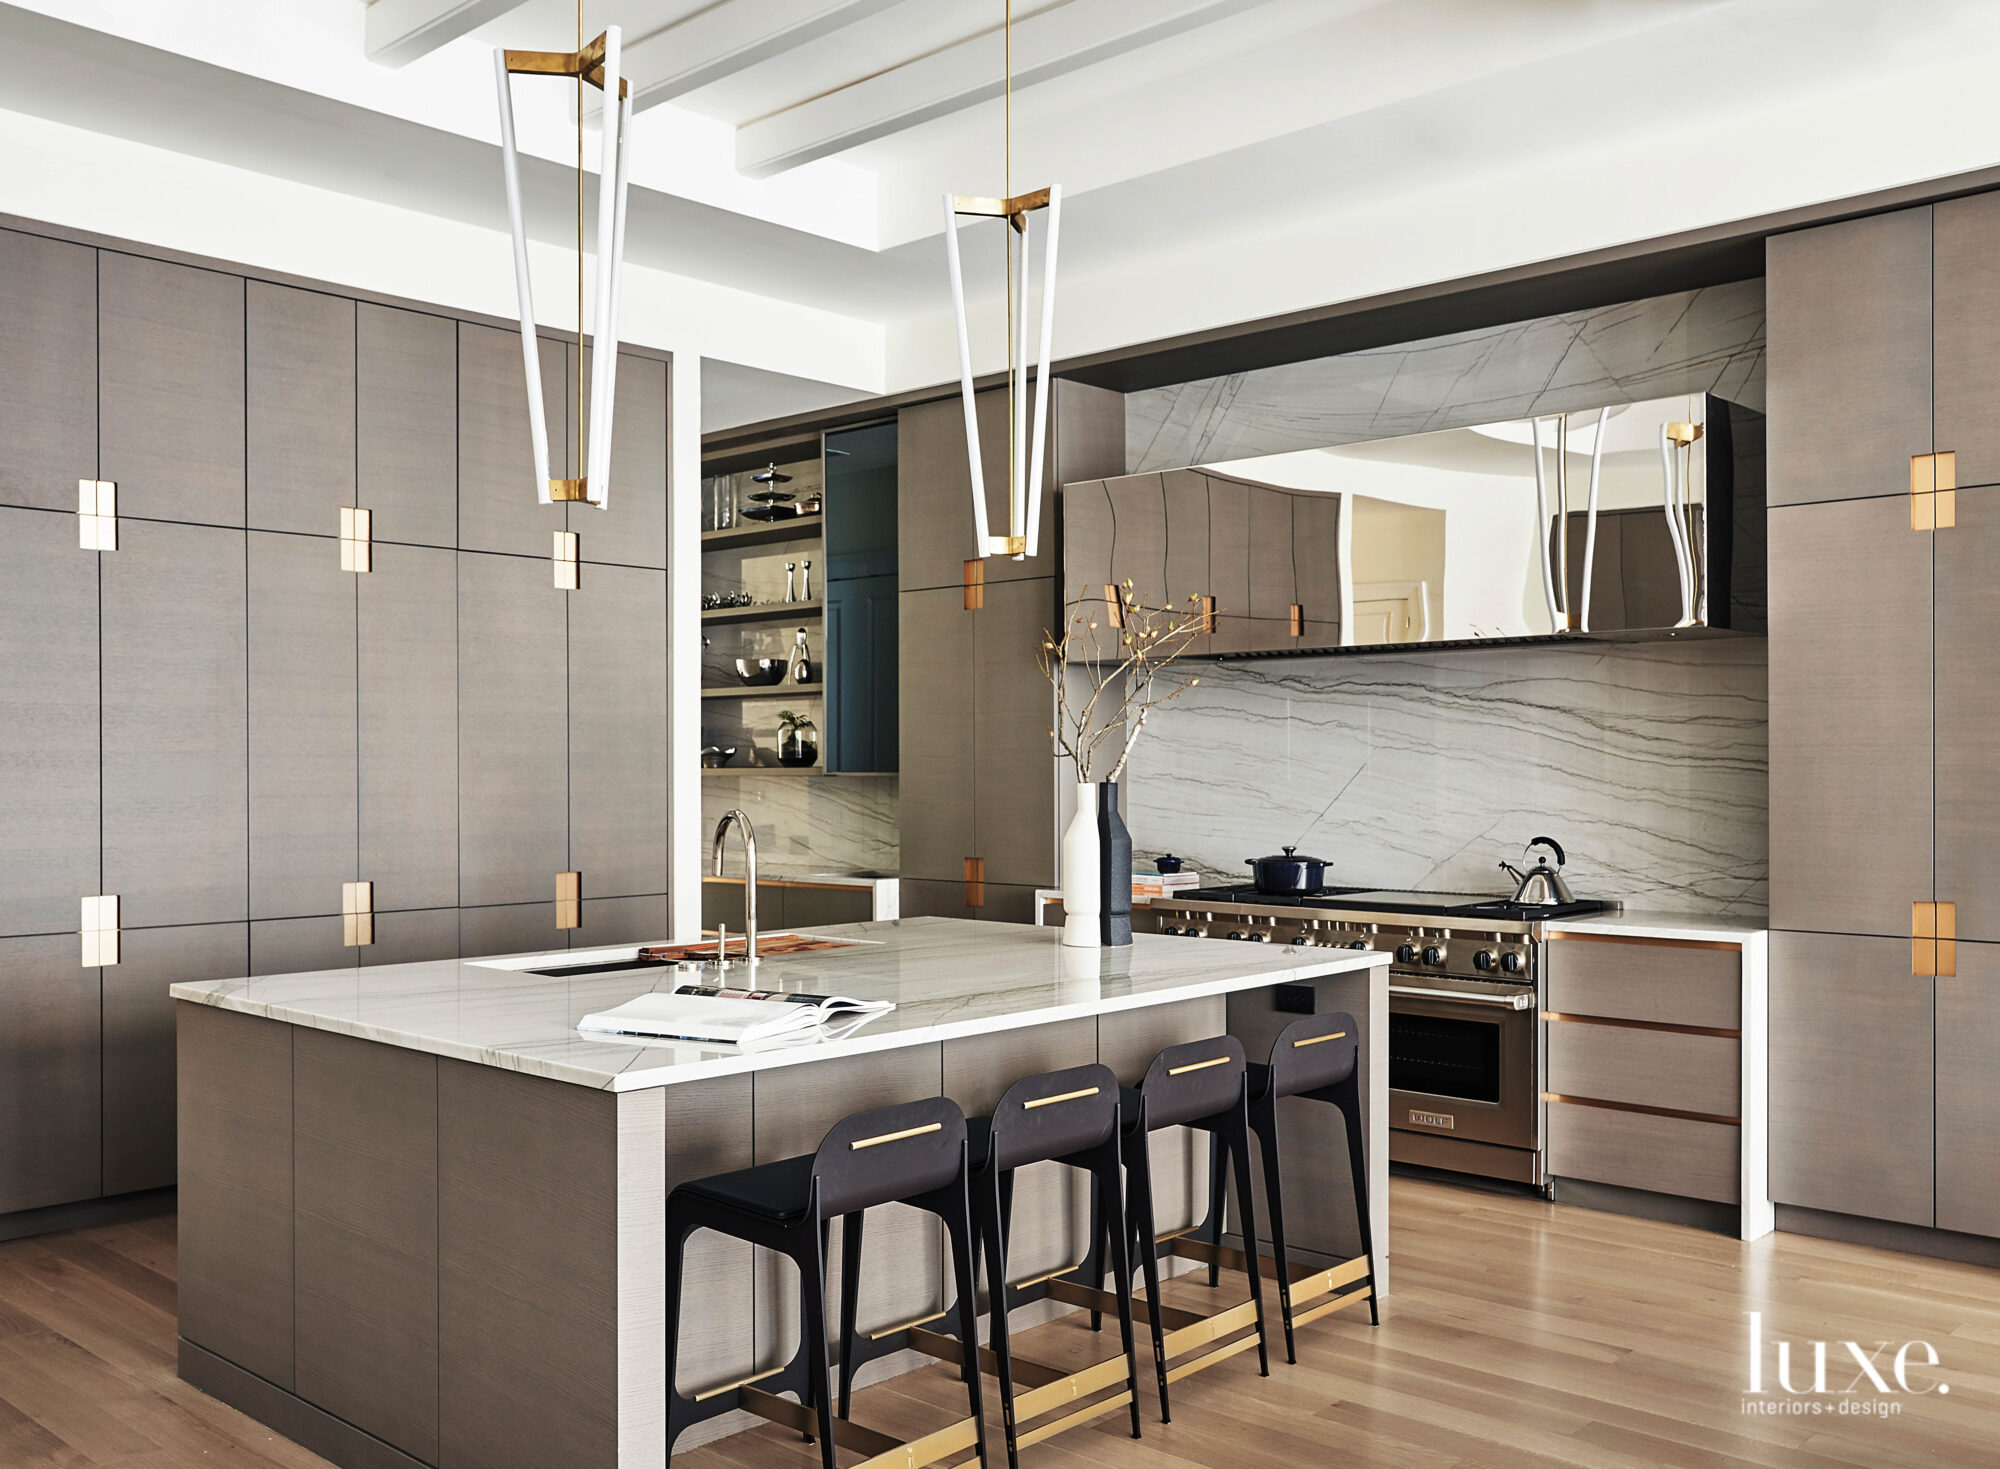 The bespoke kitchen has gray cabinetry and touches of black and brass throughout.